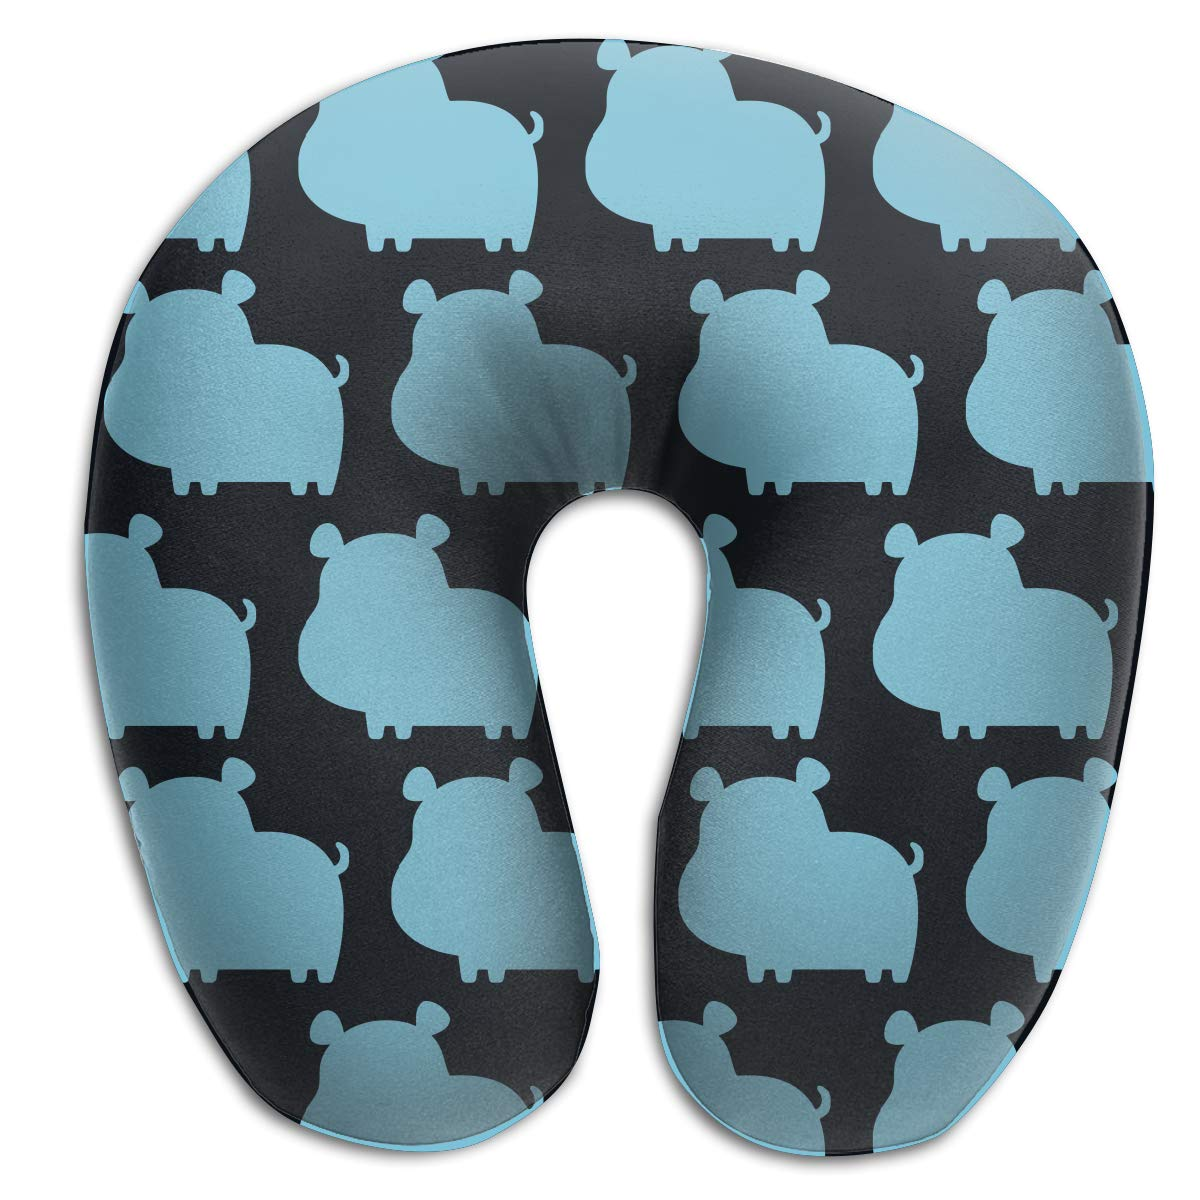 Camp Ursula Happy Animal Blue Hippo Soft Memory Foam Neck Support Travel Pillow